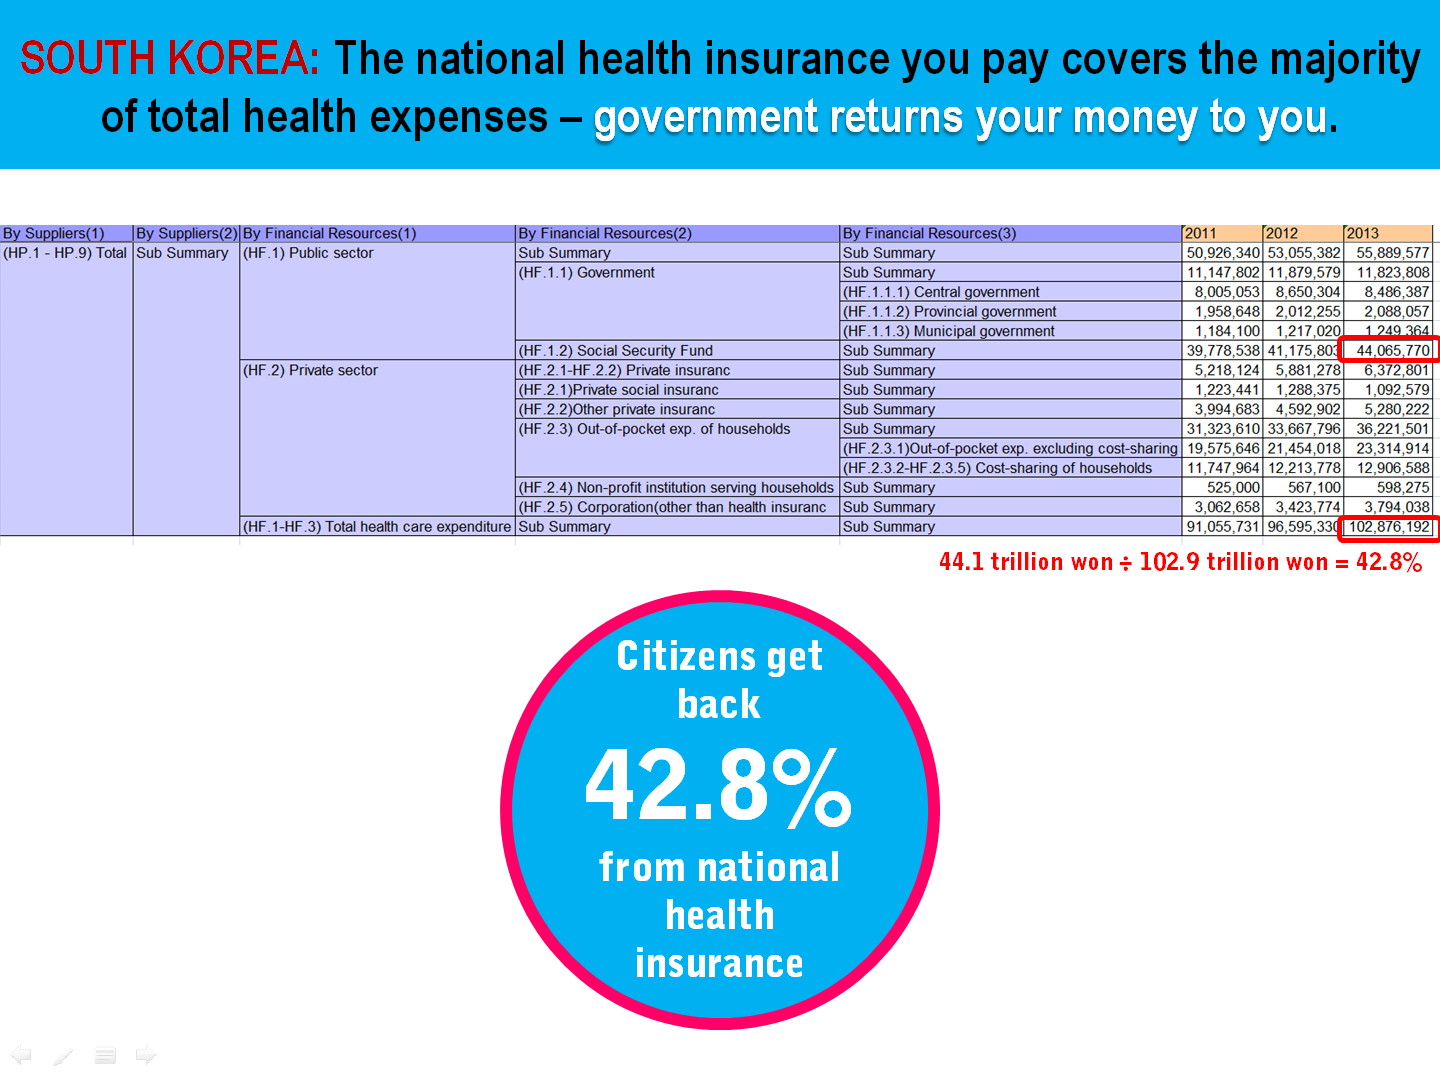 4 South Korea Health Insurance Contribution Rate vs Total Expenditure.png